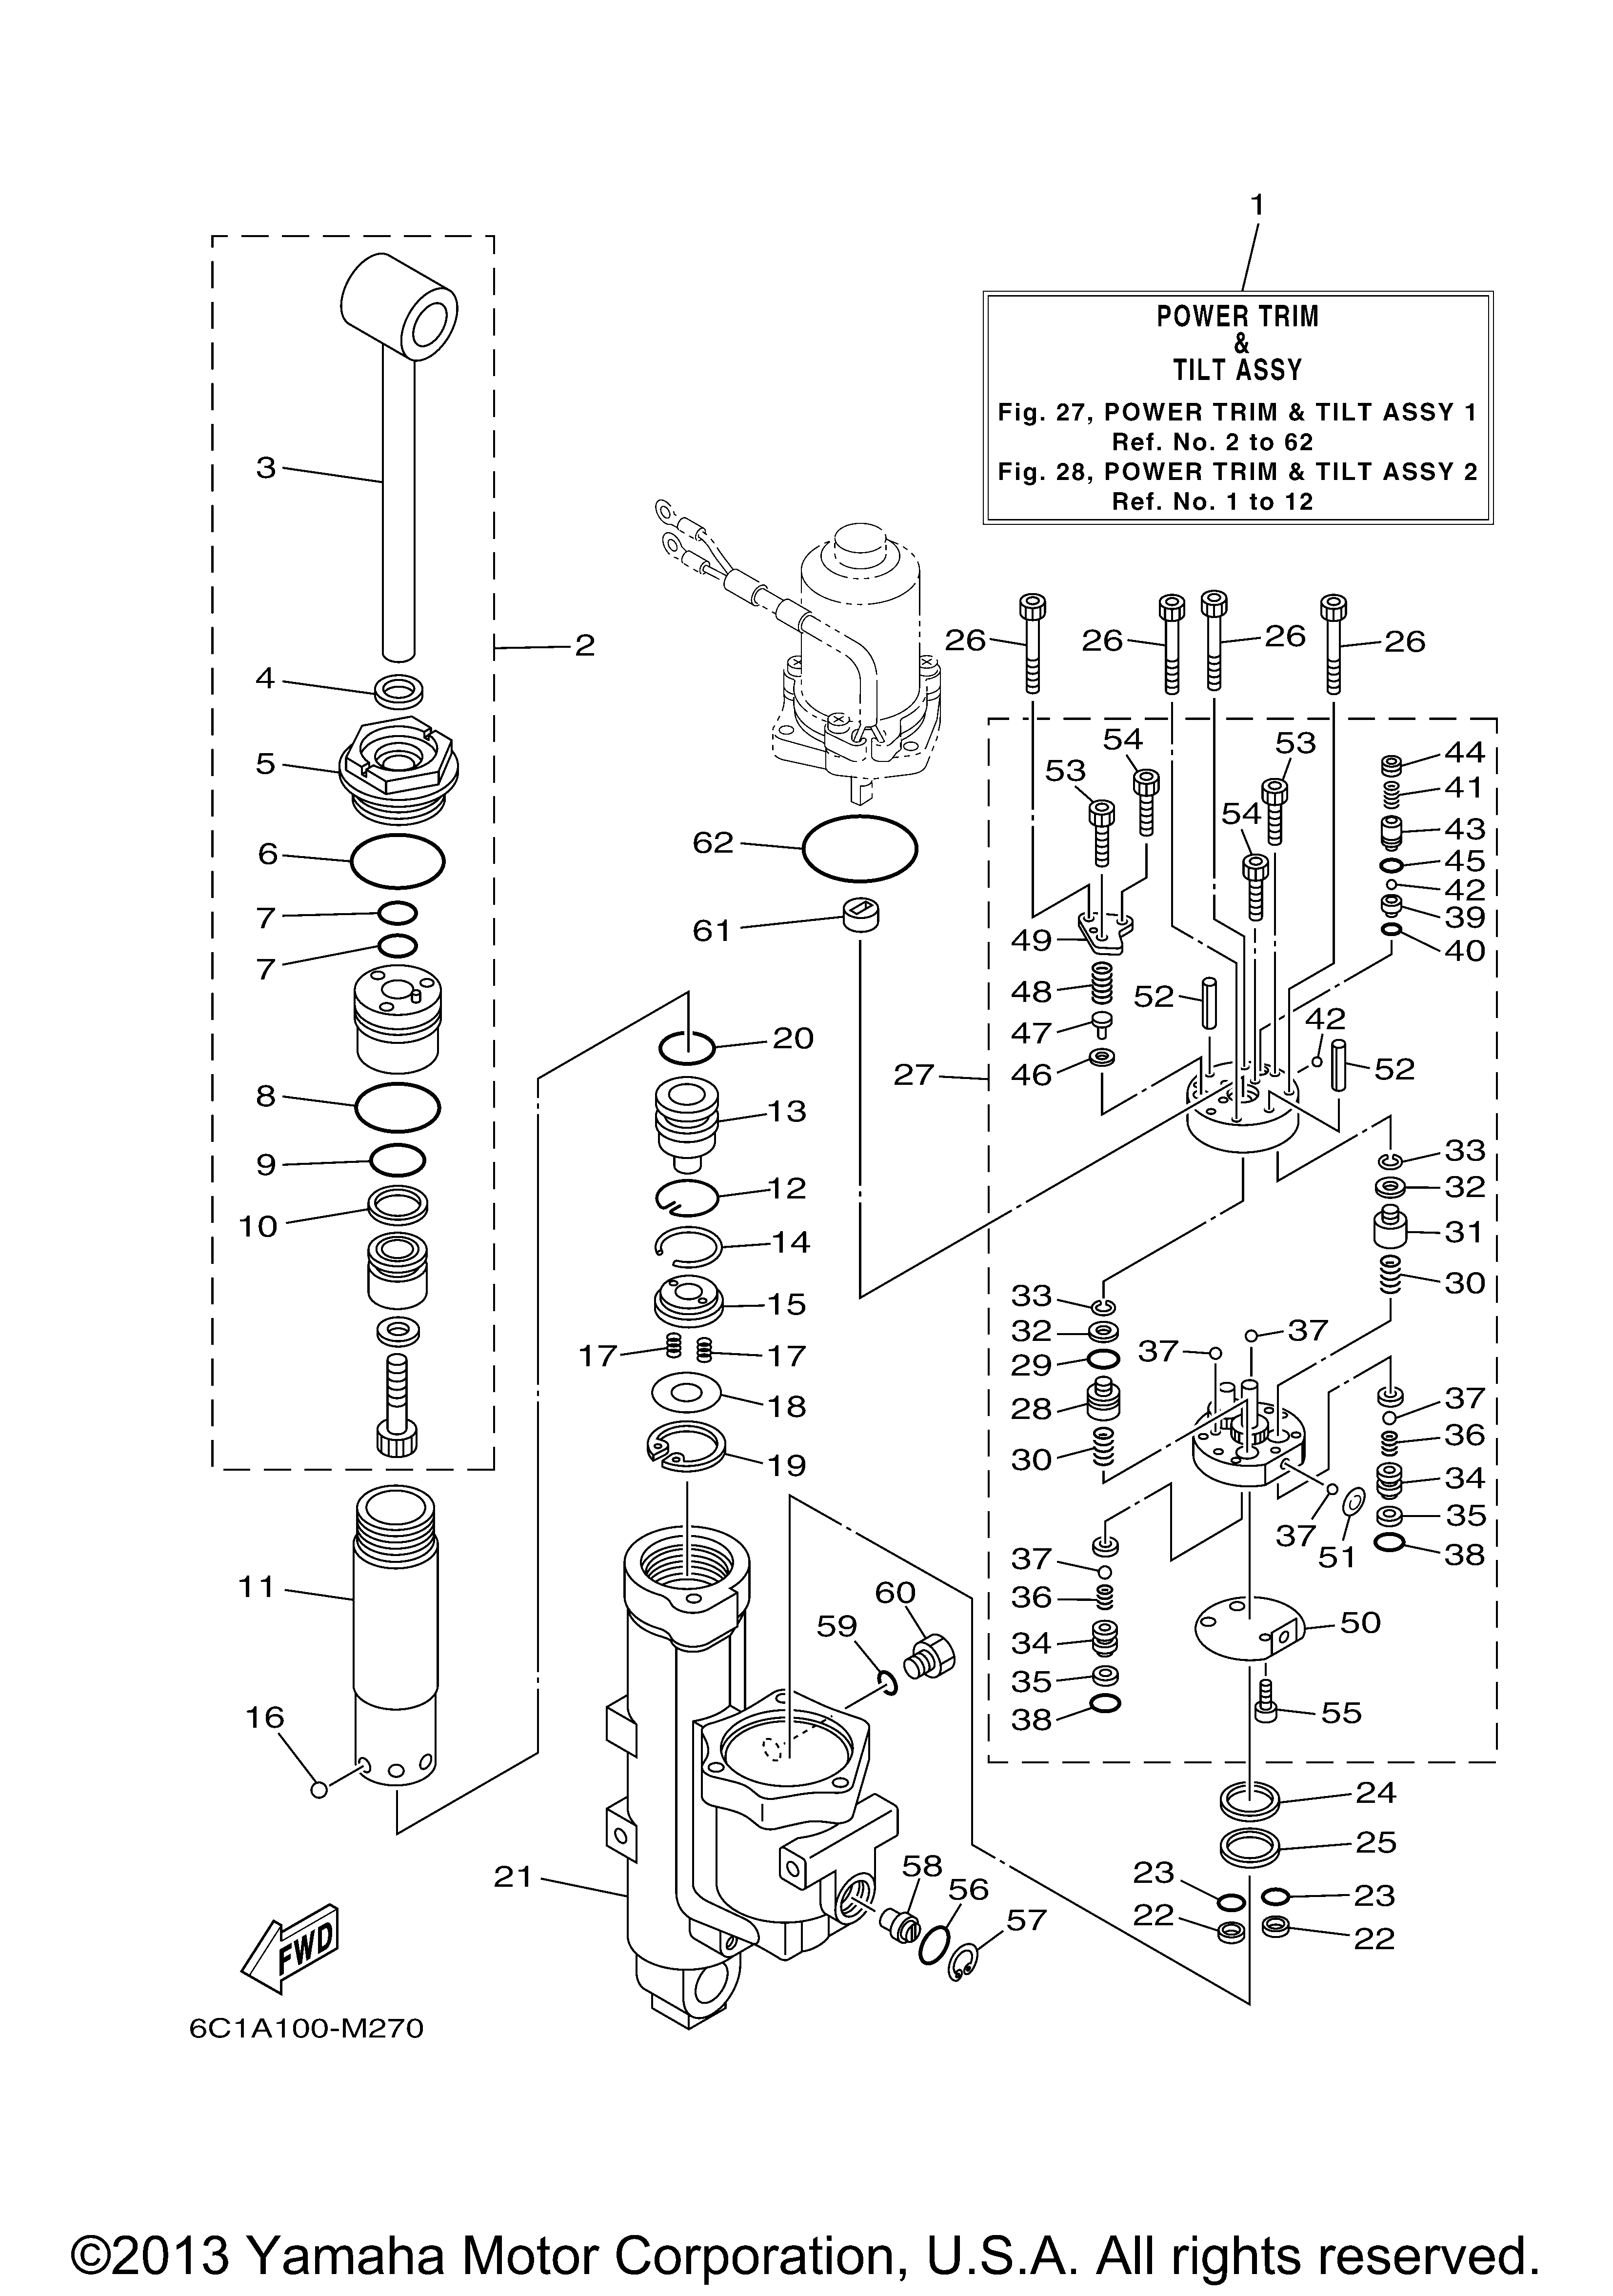 Yamaha Outboard 60 Hp F60jb Power Trim Tilt Assy 1 And Gauge Wiring Diagram Ref Description Qty Required Price